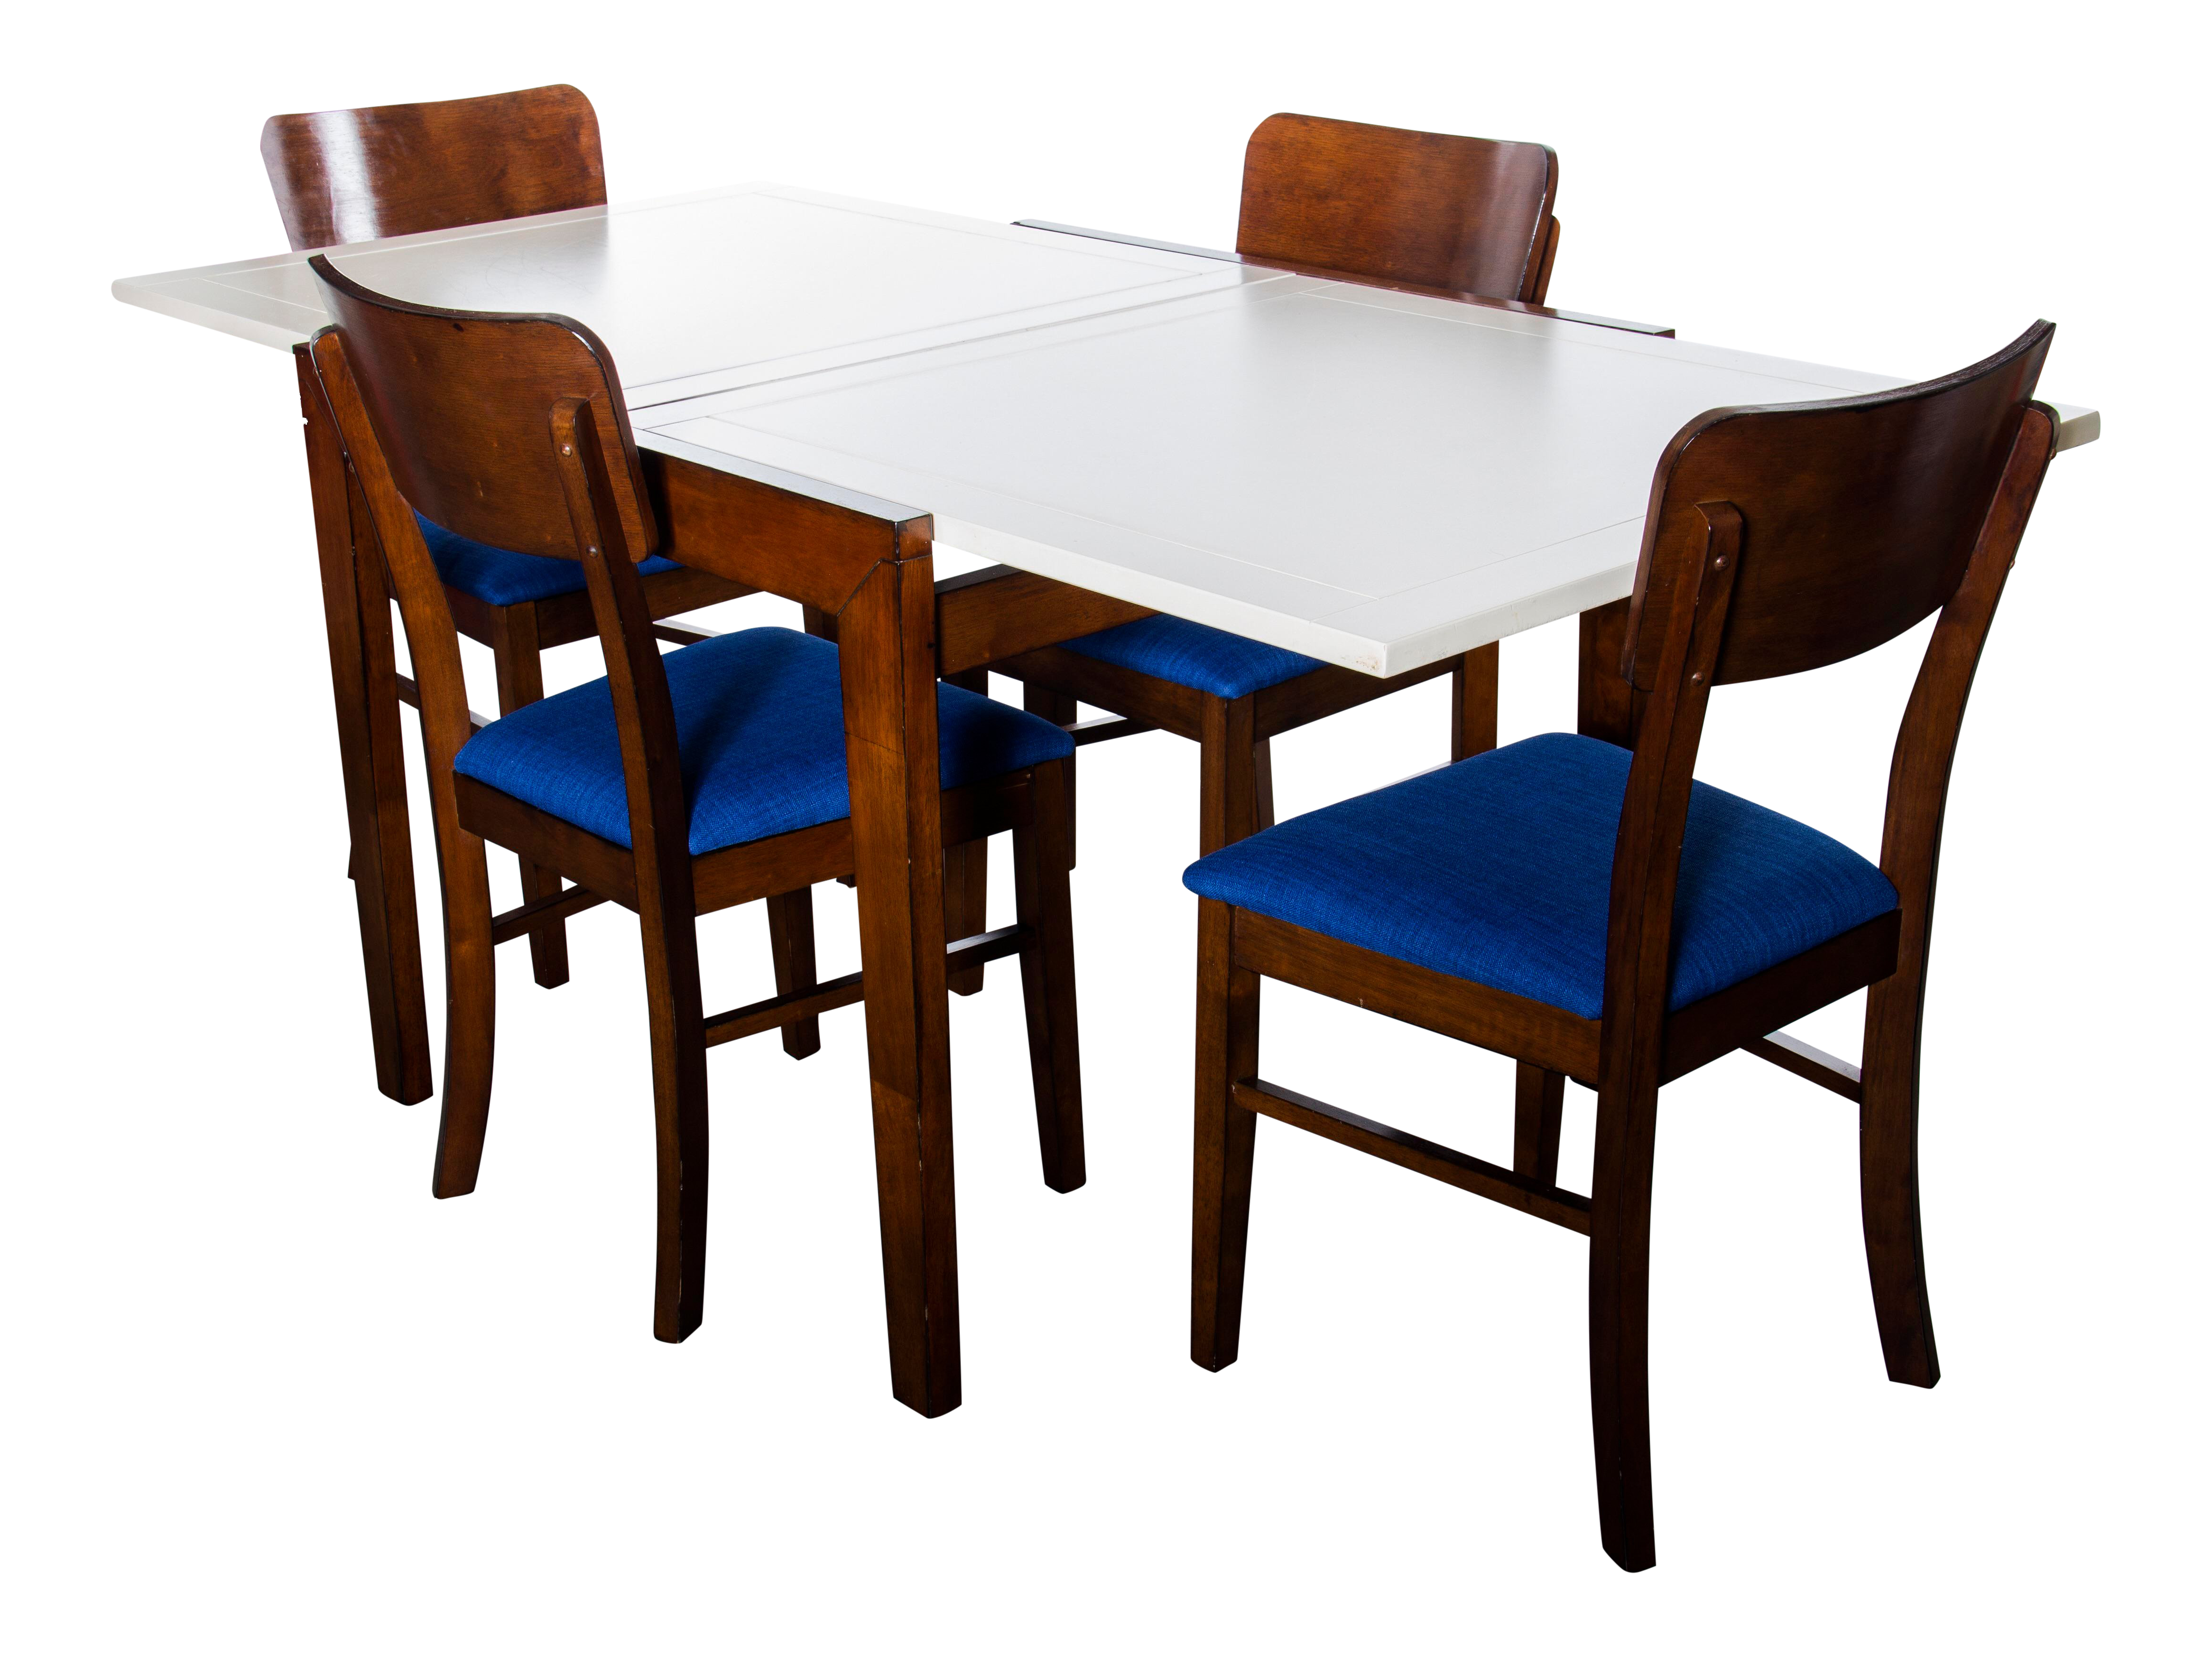 Groovy Contemporary Wood Dining Table And Chairs Set Home Interior And Landscaping Mentranervesignezvosmurscom